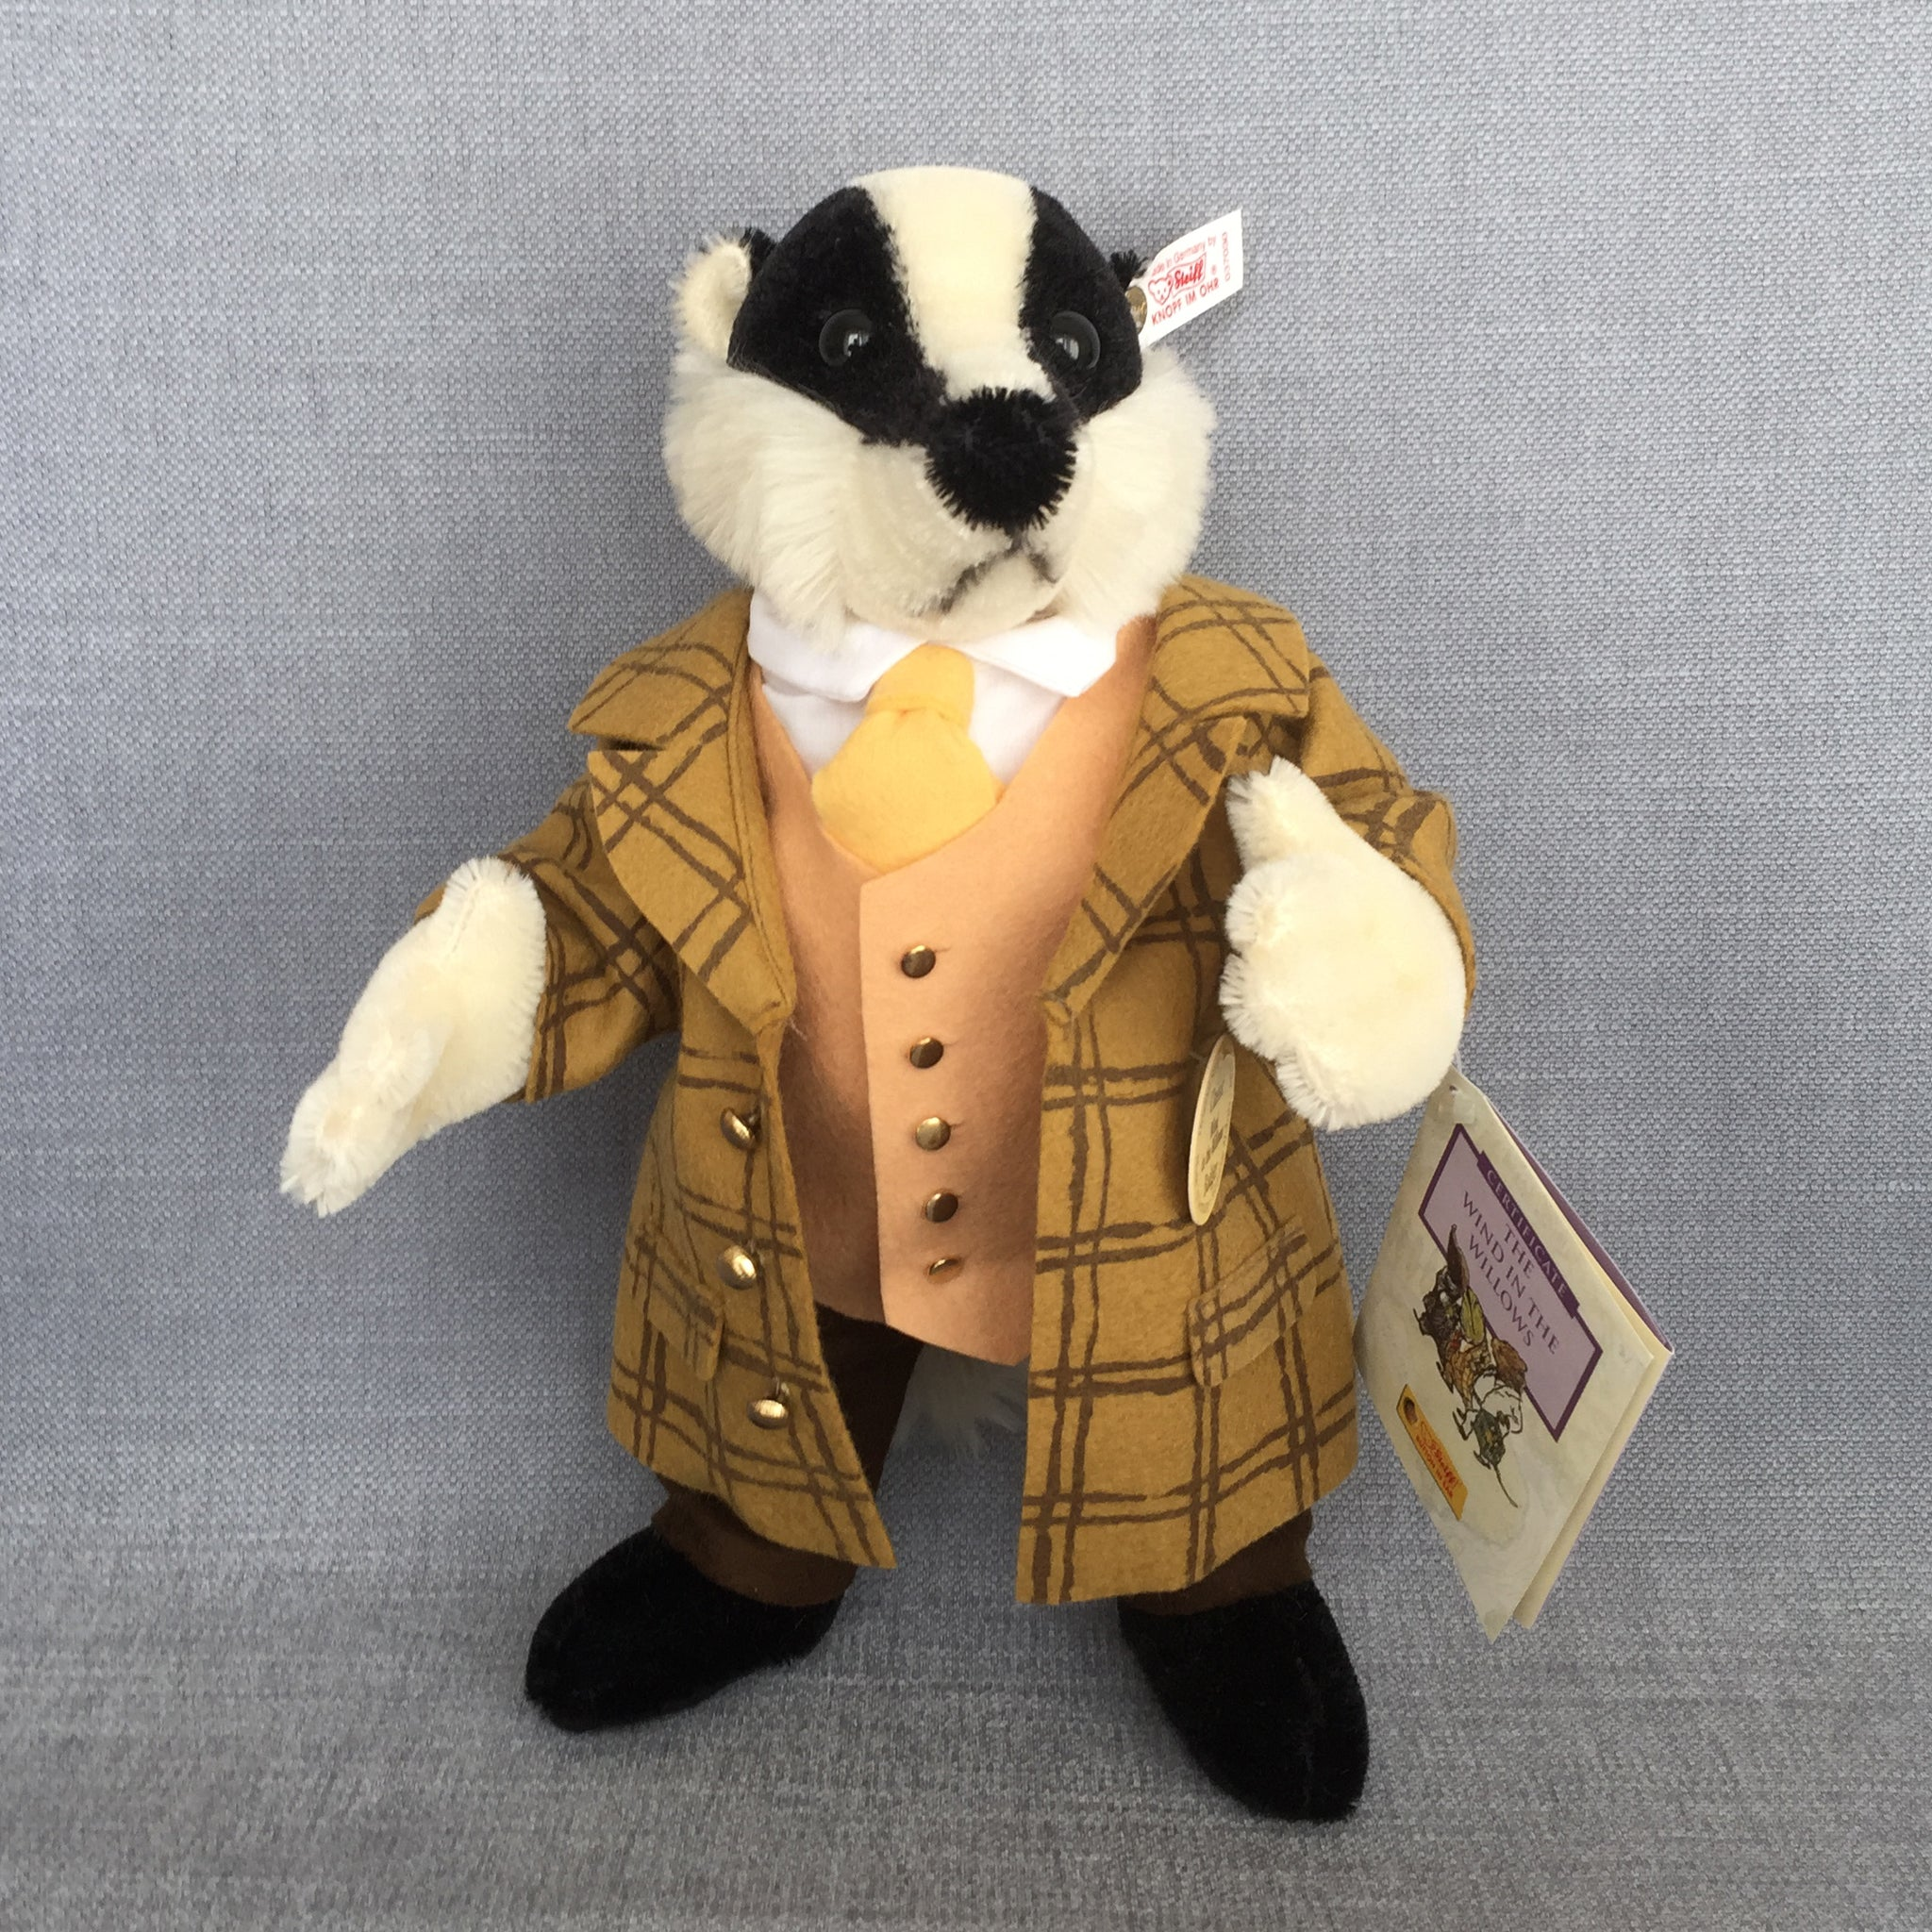 Steiff Classic Wind in the Willows Set - Mole, Ratty, Badger & Toad